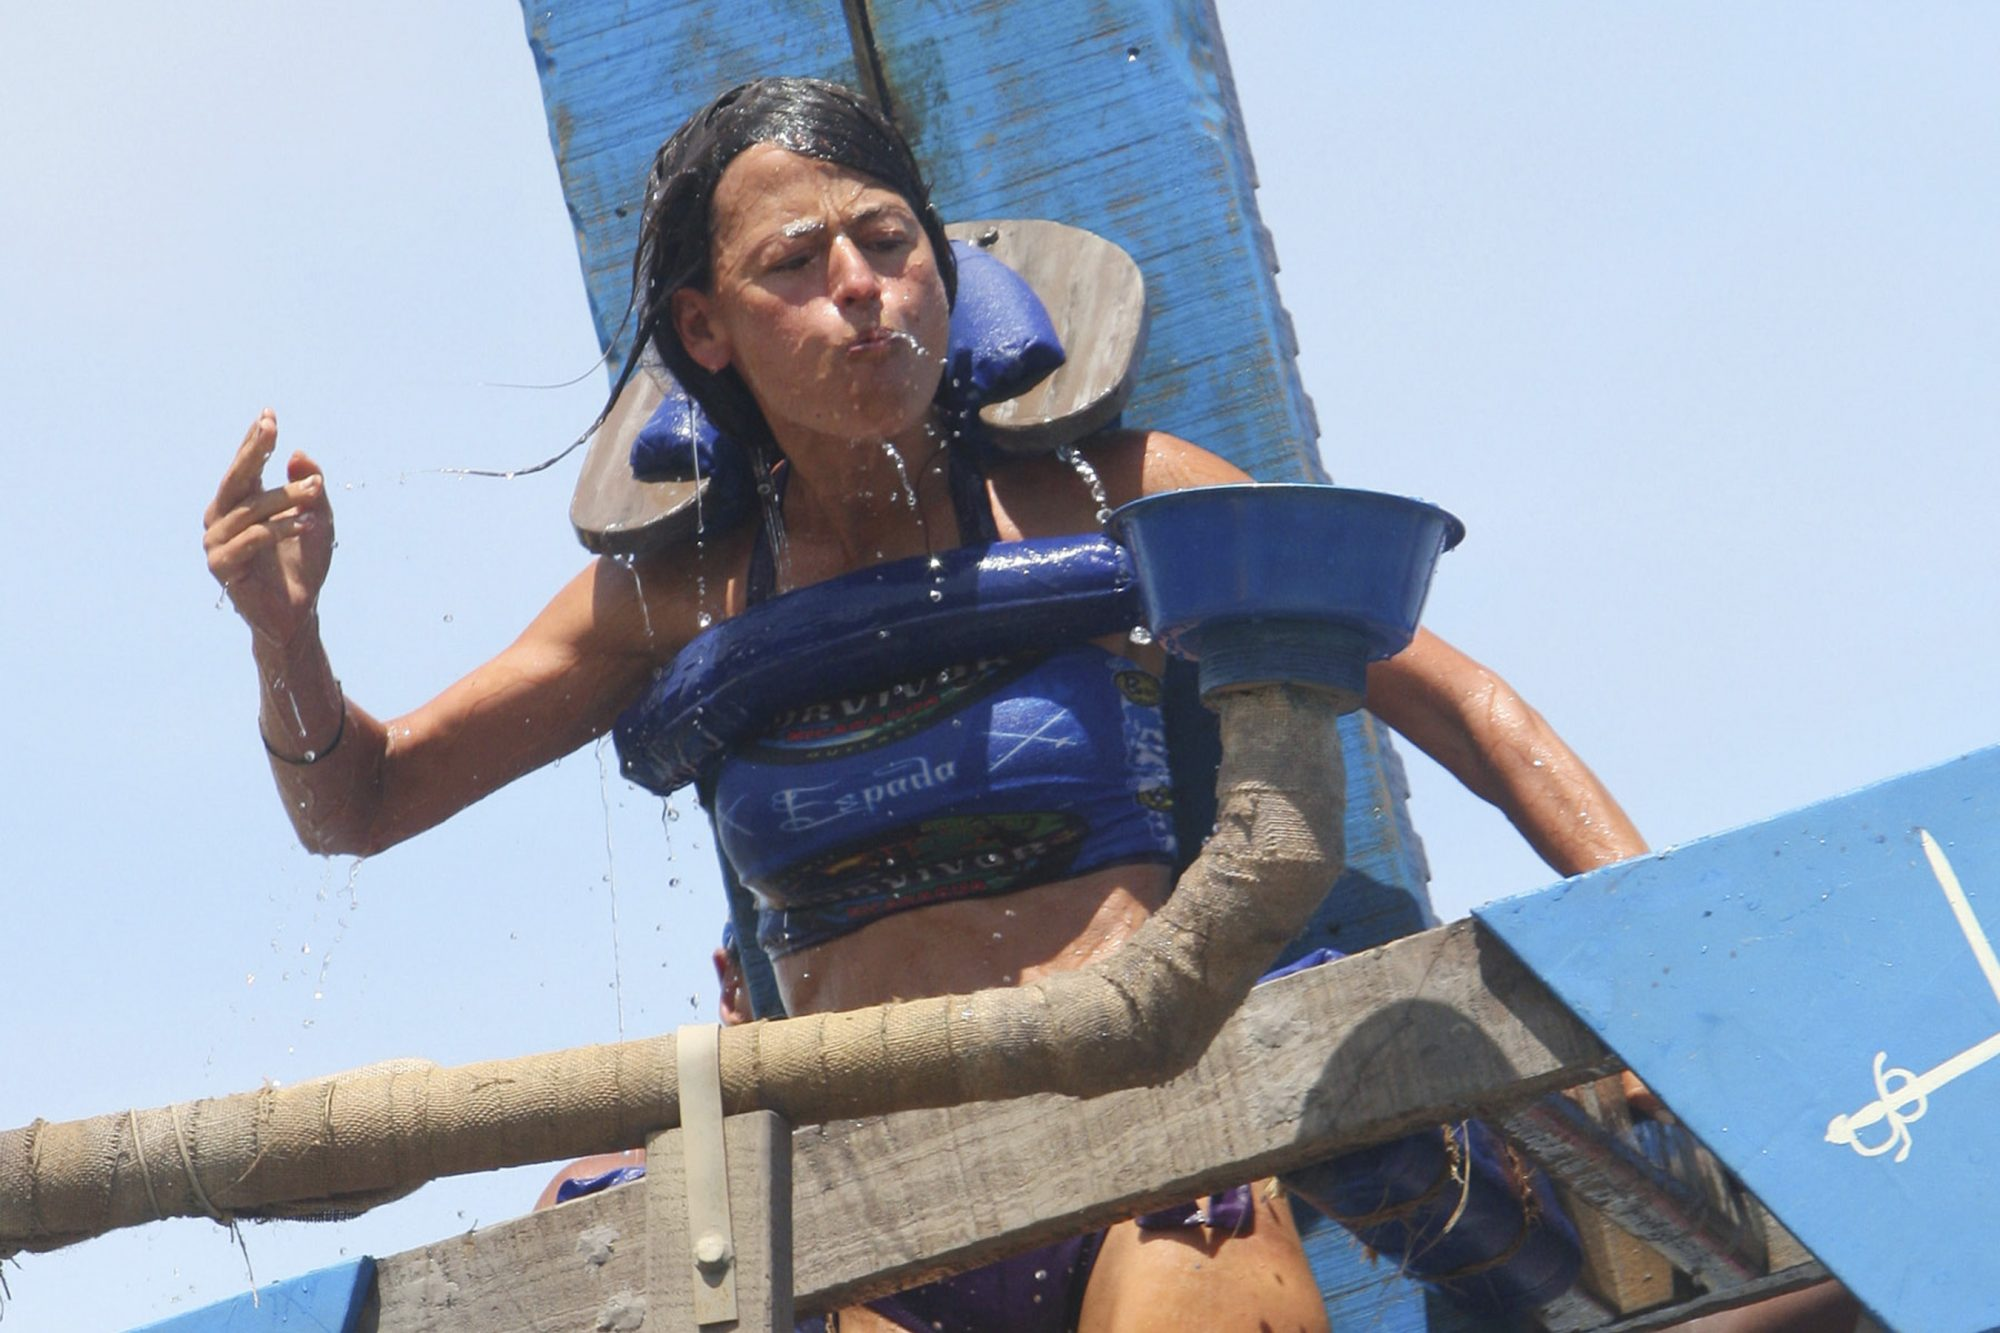 Yve Rojas, during the challenge, during the fifth episode of SURVIVOR: NICARAGUA, Wednesday, Oct. 13 (8:00 - 9:00 PM ET/PT) on the CBS Television Network. Photo: Monty Brinton/CBS ©2010 CBS Broadcasting Inc. All Rights Reserved